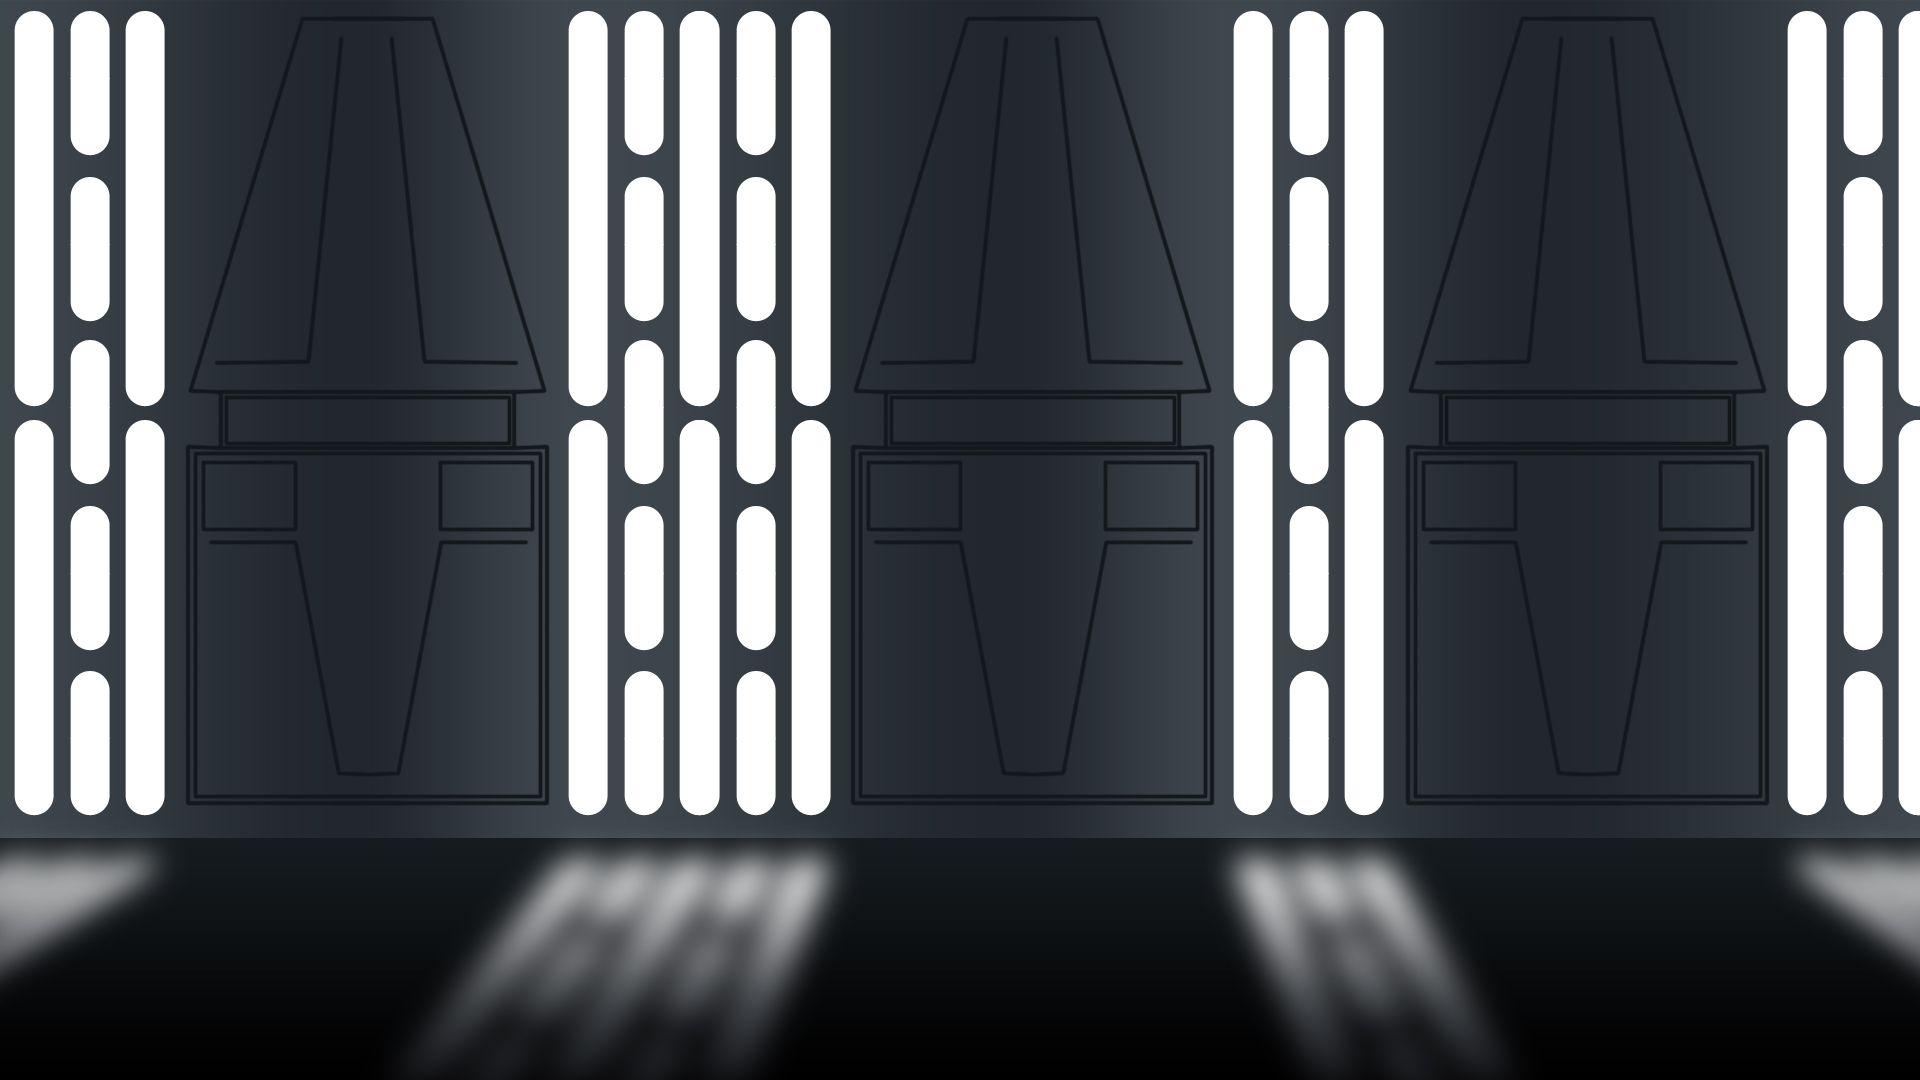 Star Wars Imperial Wall Panel By Balsavor On Deviantart